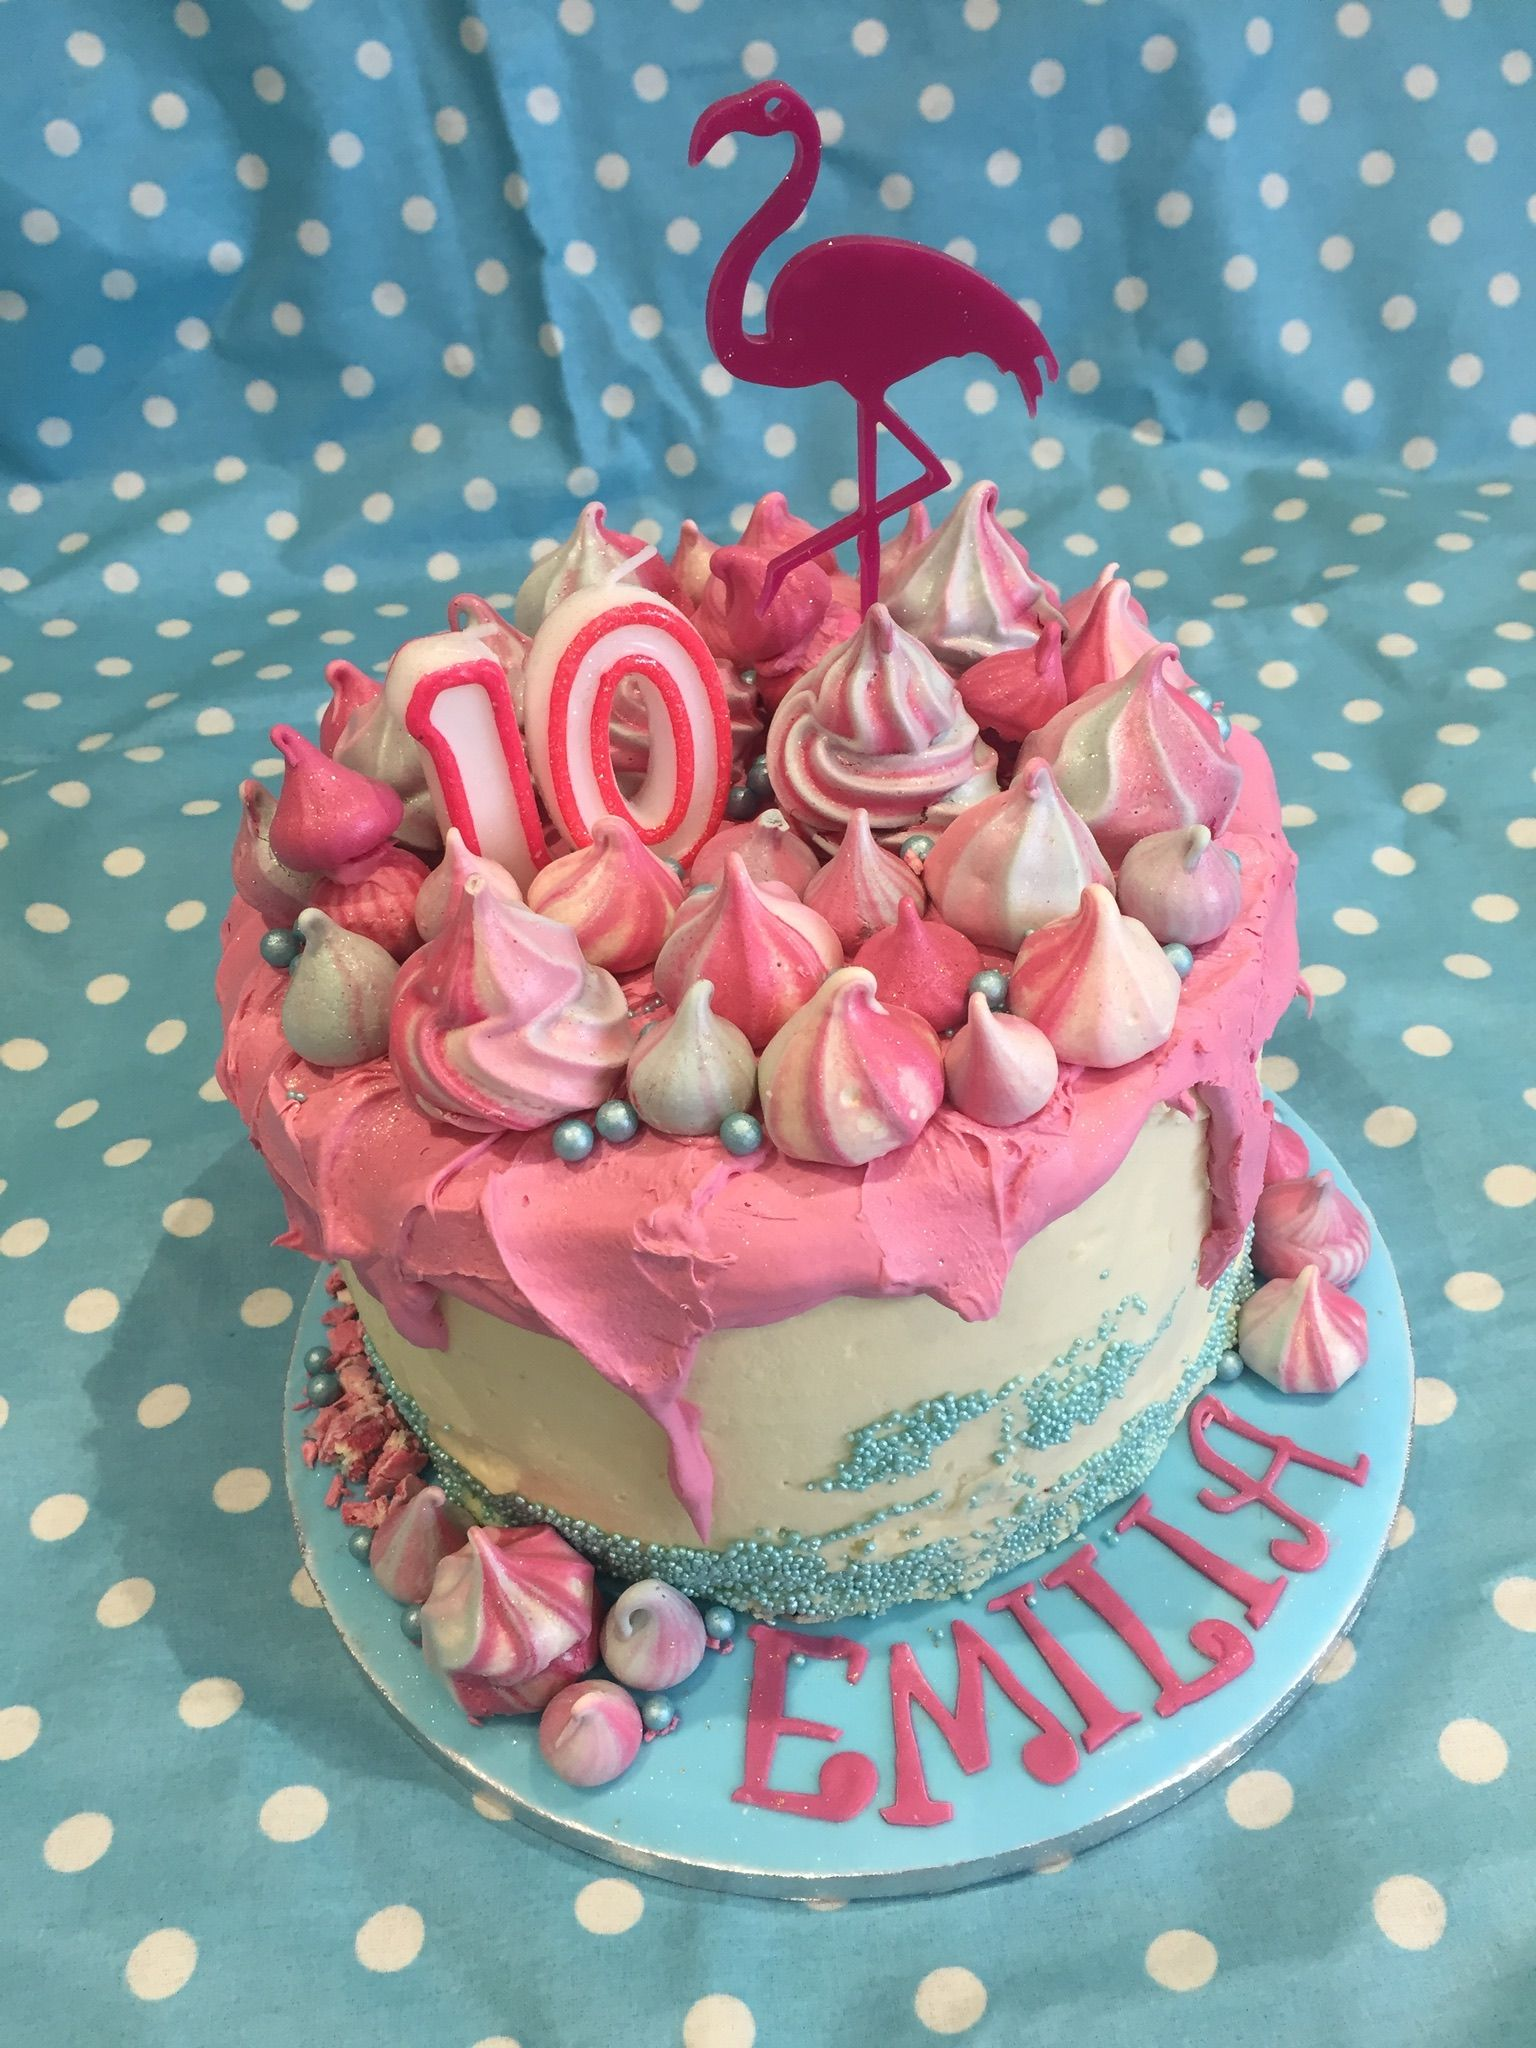 Flamingo Cake Design For 10 Year Old Girl With Meringue Decoration Simple To Do Girl Cakes Birthday Cake Girls Cake Decorating